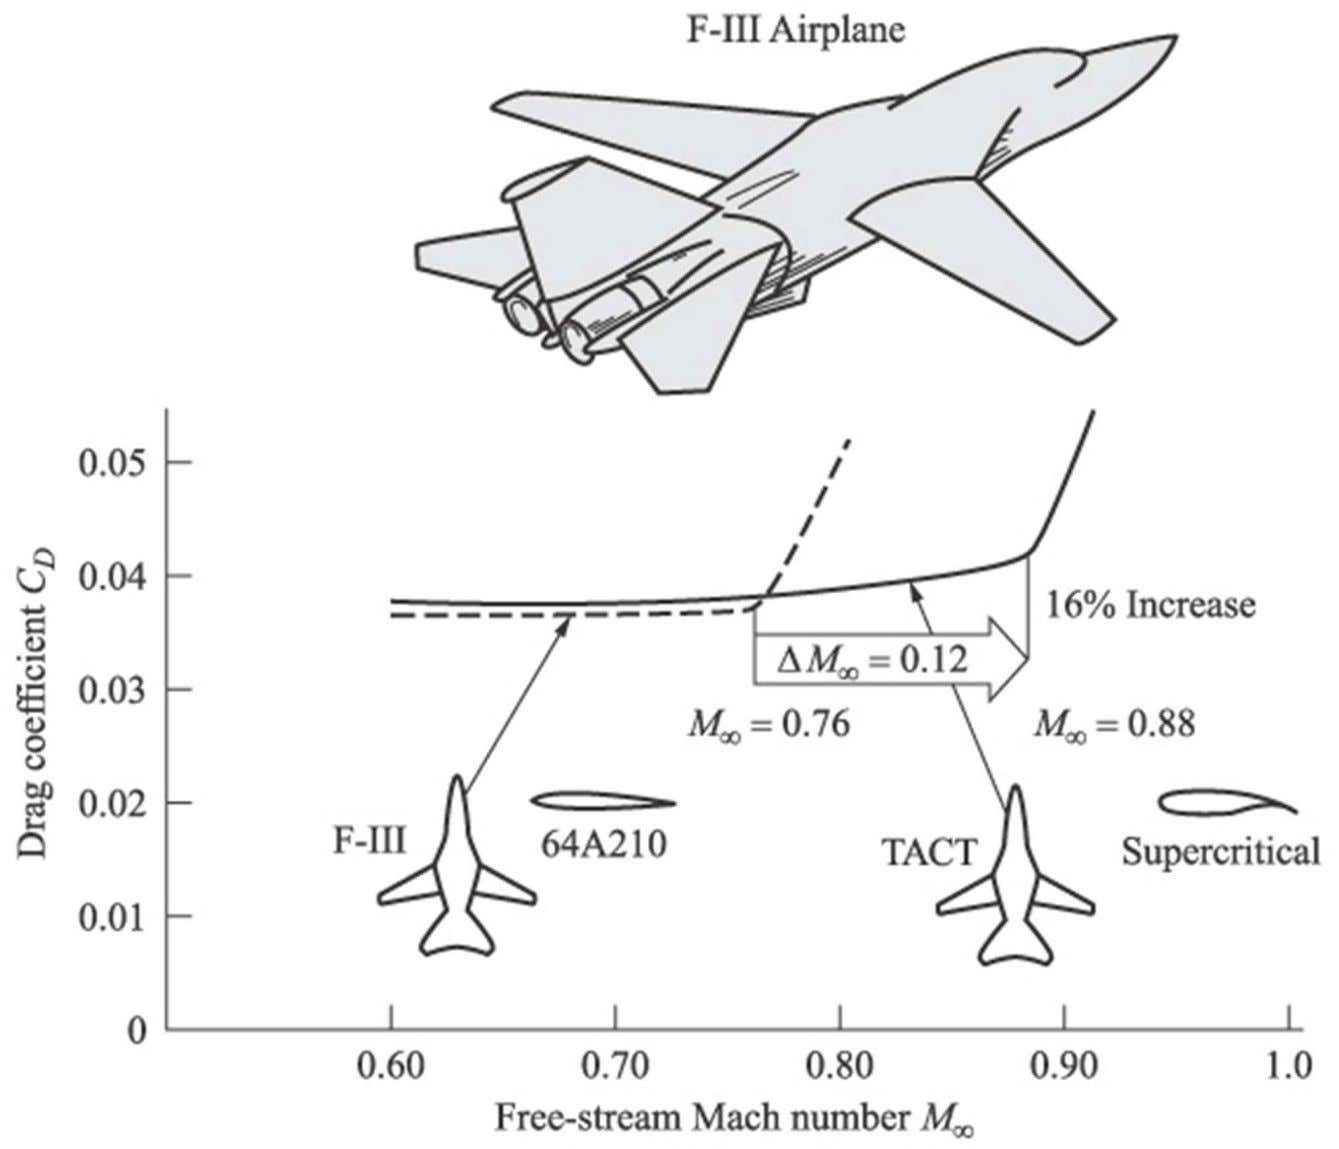 SUPERCRITICAL AIRFOILS